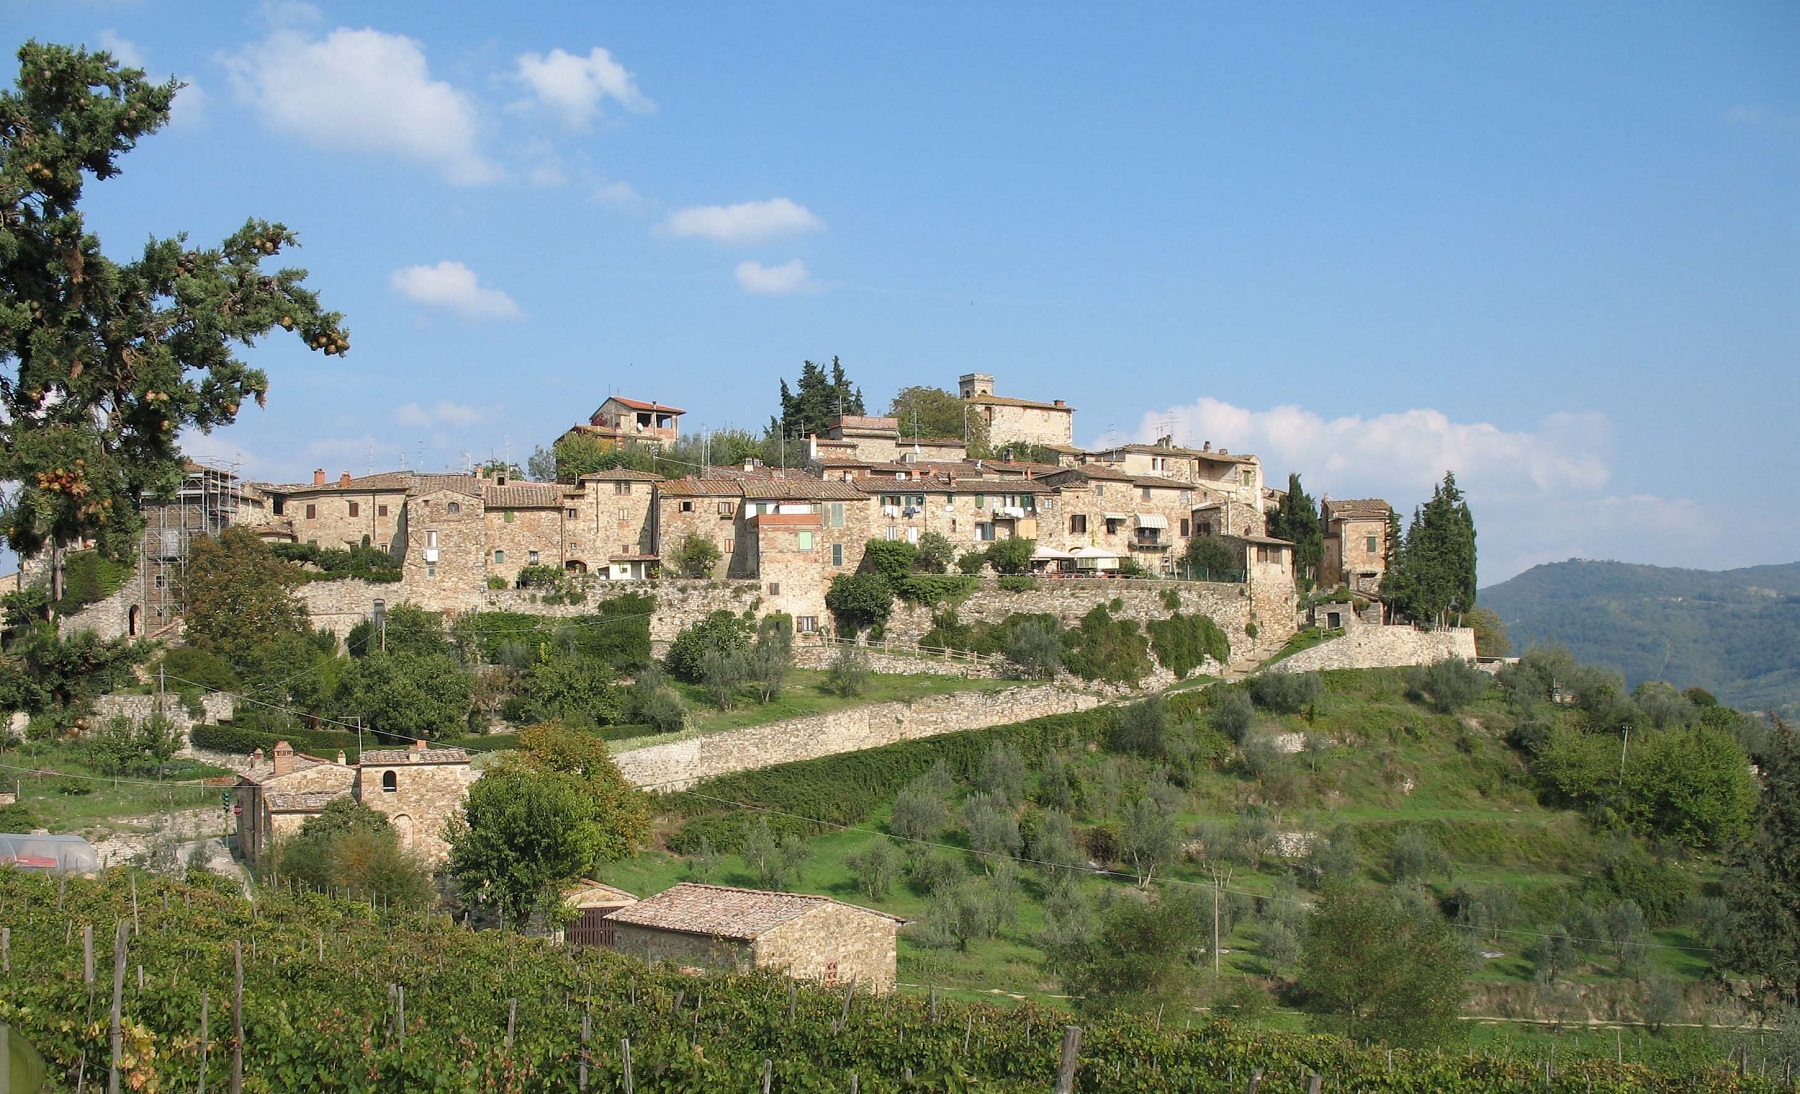 Montefioralle Winery